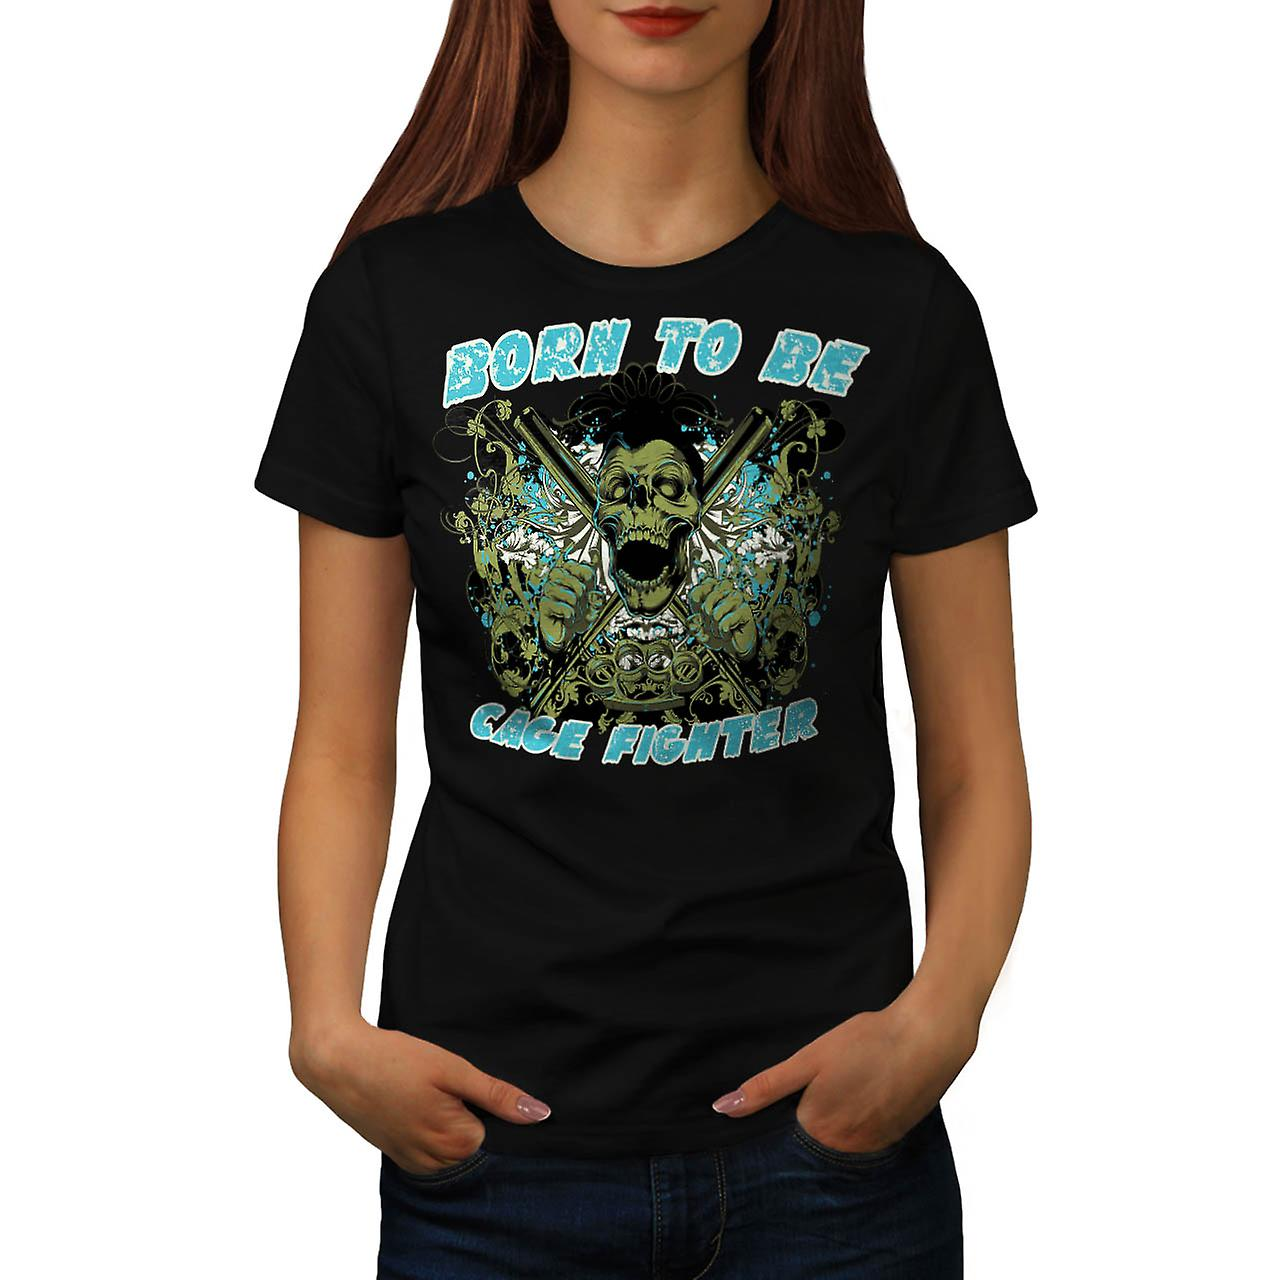 Né le Cage Fighter USA mort Skull femme T-shirt noire | Wellcoda